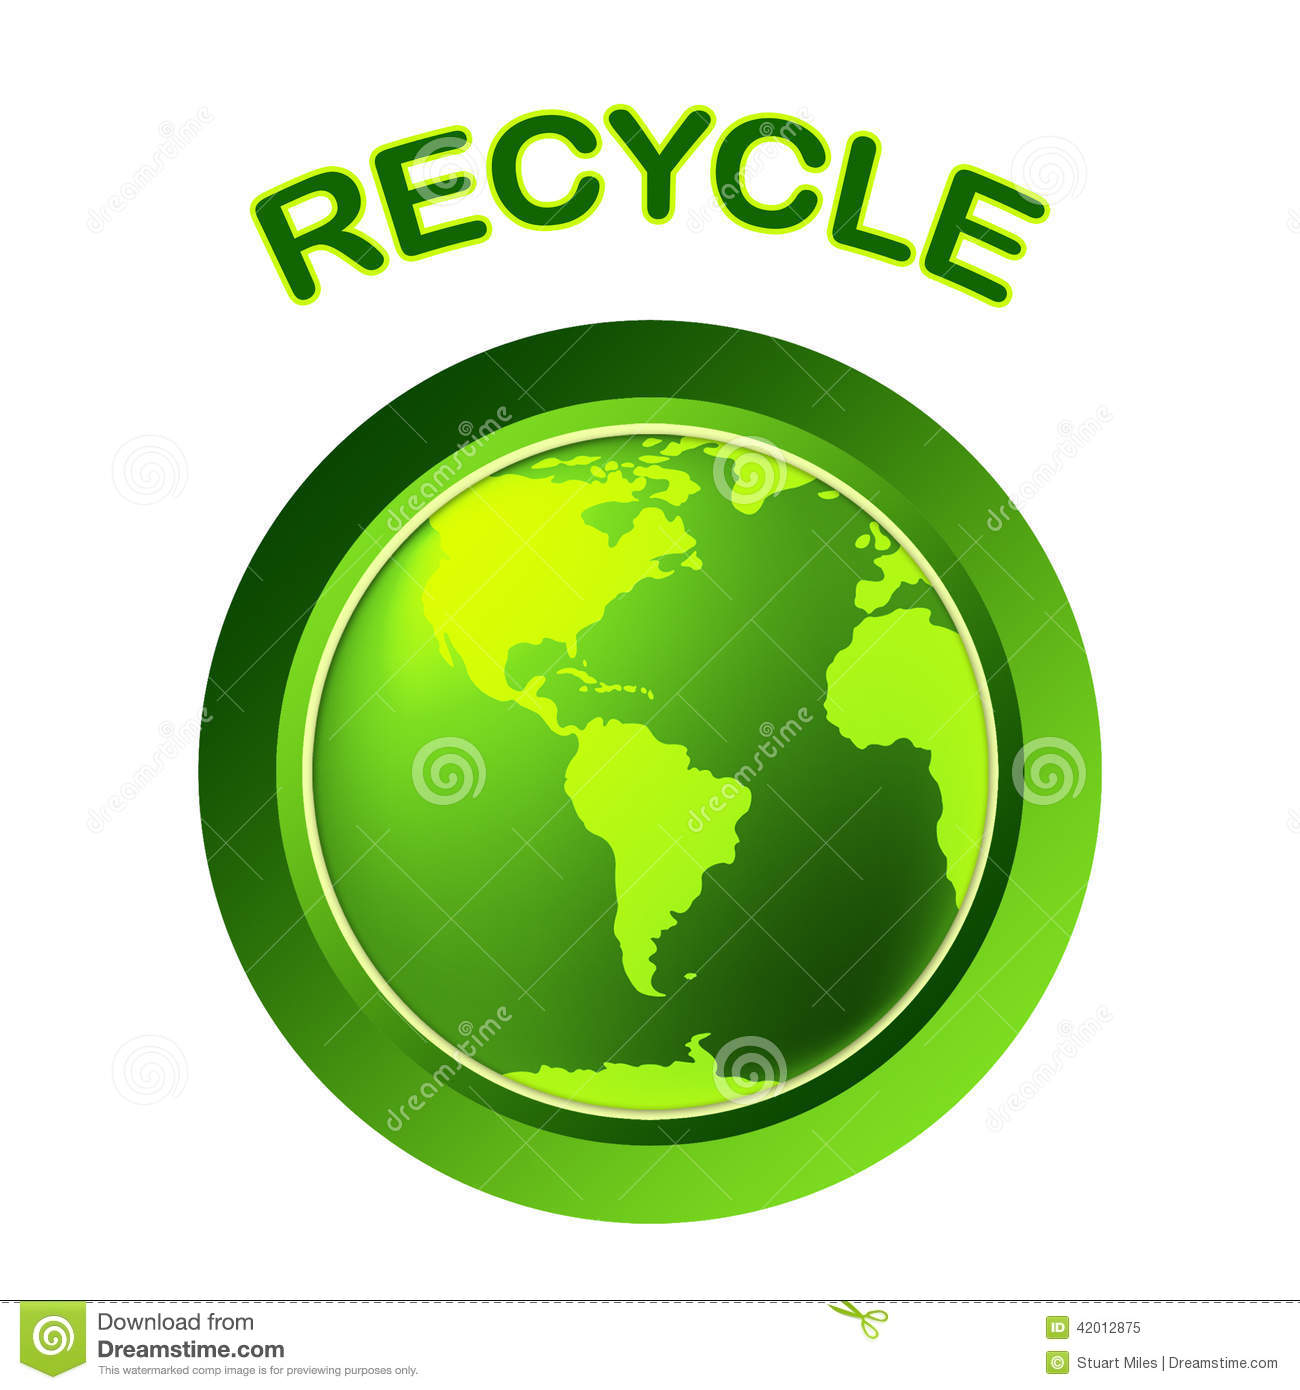 World Recycle Shows Eco Friendly And Conservation Stock World Recycle Shows Eco Friendly Conservation Meaning Earth Environment  Stock Illustration World Recycle Shows Eco Friendly Conservation Meaning Earth Environment Image